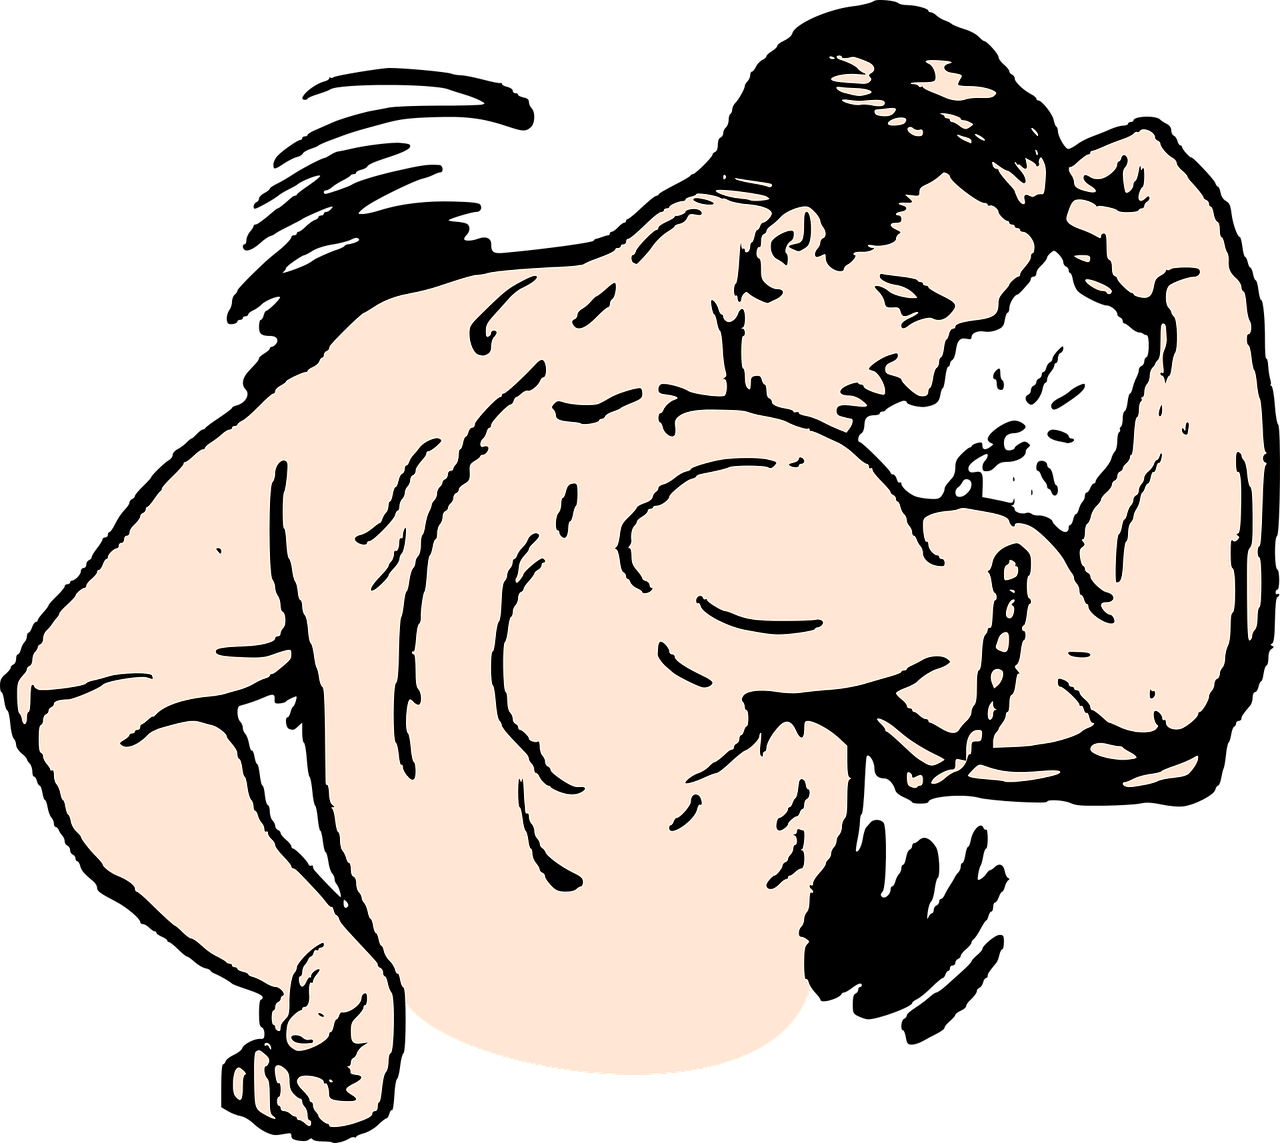 Beefy arm clipart jpg black and white library Muscles clipart muscle mass, Muscles muscle mass Transparent FREE ... jpg black and white library